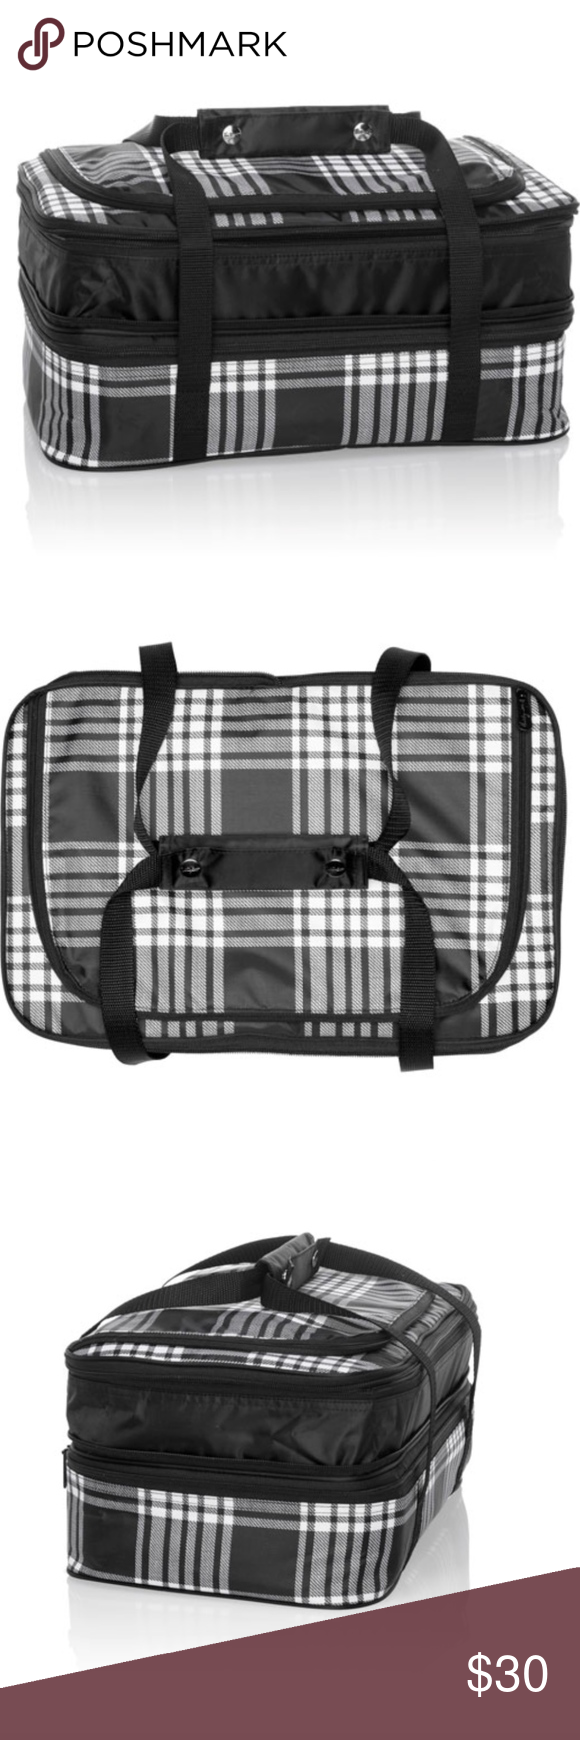 """New Thirty-One Perfect Party Thermal Party Bag The Perfect Party Set expands to hold two 9"""" x 13"""" casserole pans inside 2 interior water-resistant thermal compartments. Handle grips make it easy to carry, while the exterior zipper pocket can keep additional items like utensils, baking instructions and additional ingredients secure during transport. It's the most convenient way to take your favorite casseroles, desserts, appetizers and more to your next family picnic, neighborhood cookout, #familypicnicfoods"""